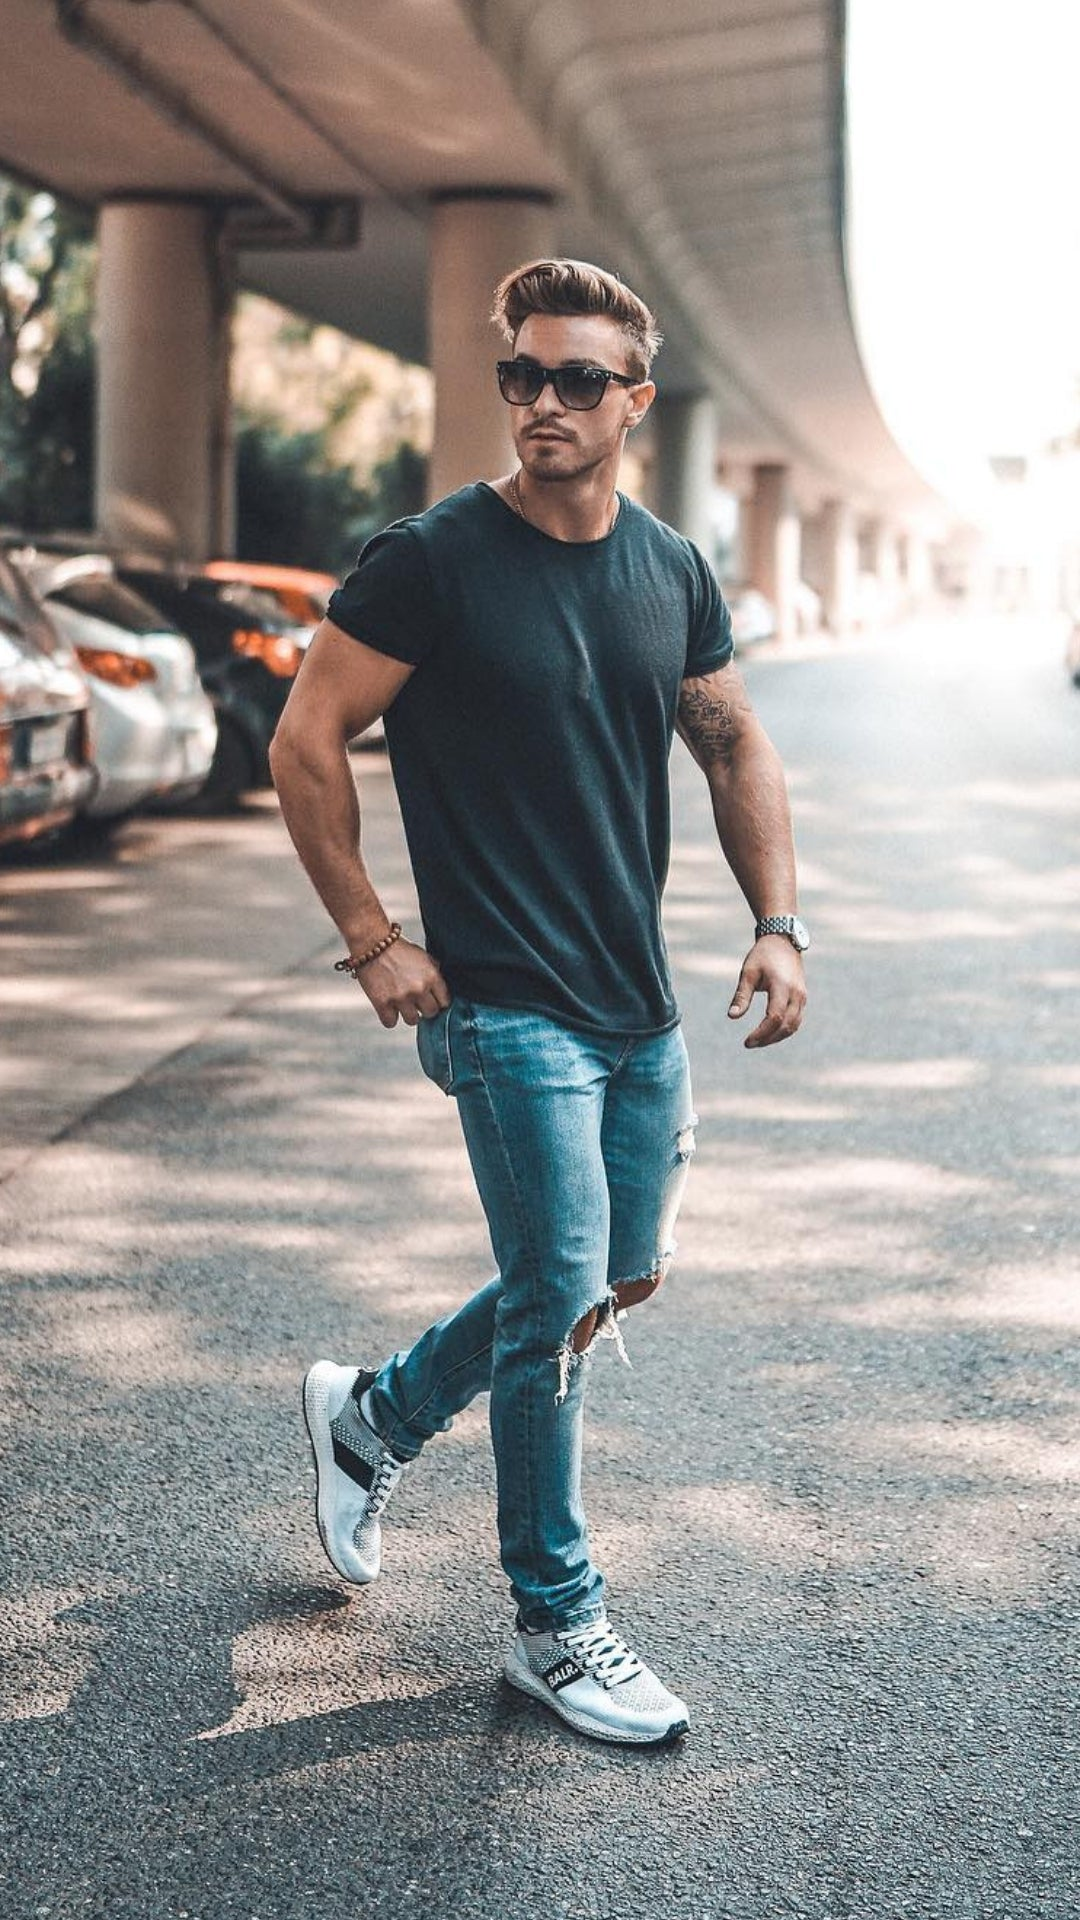 If You Like Street Style, Try These Outfit Ideas #streetstyle #mensfashion